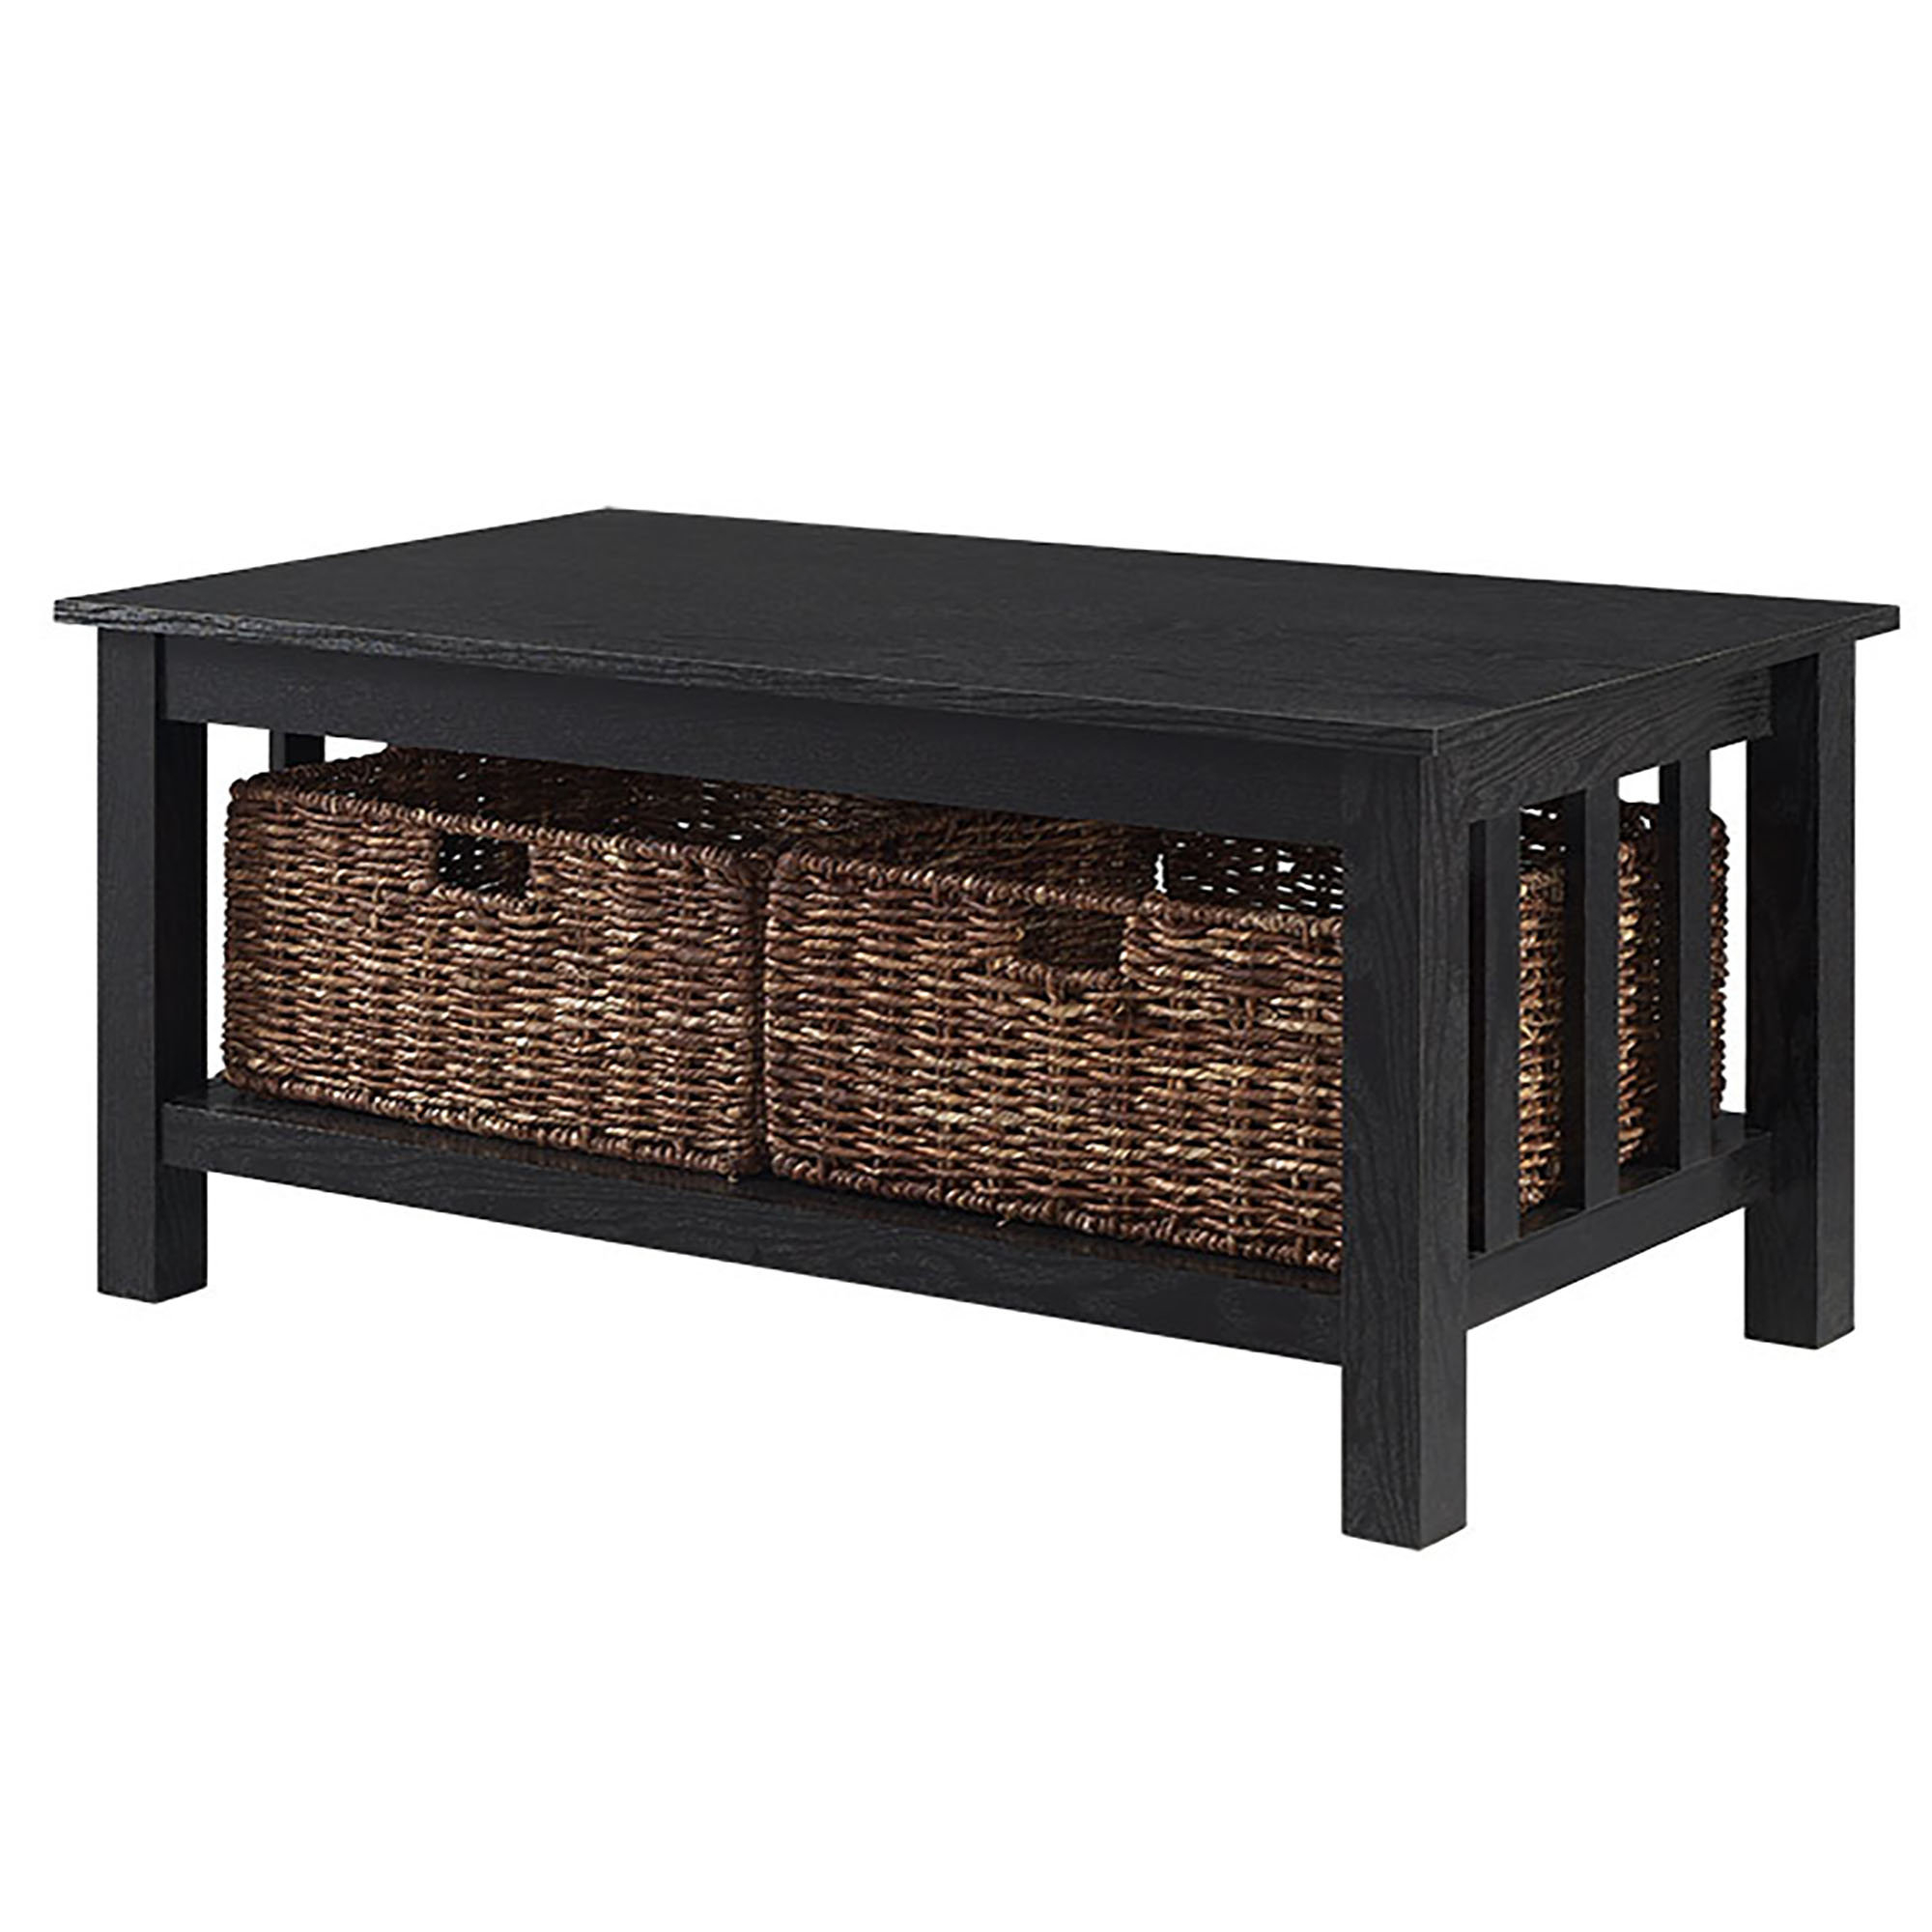 Farmhouse & Rustic Black Coffee Tables (View 16 of 20)